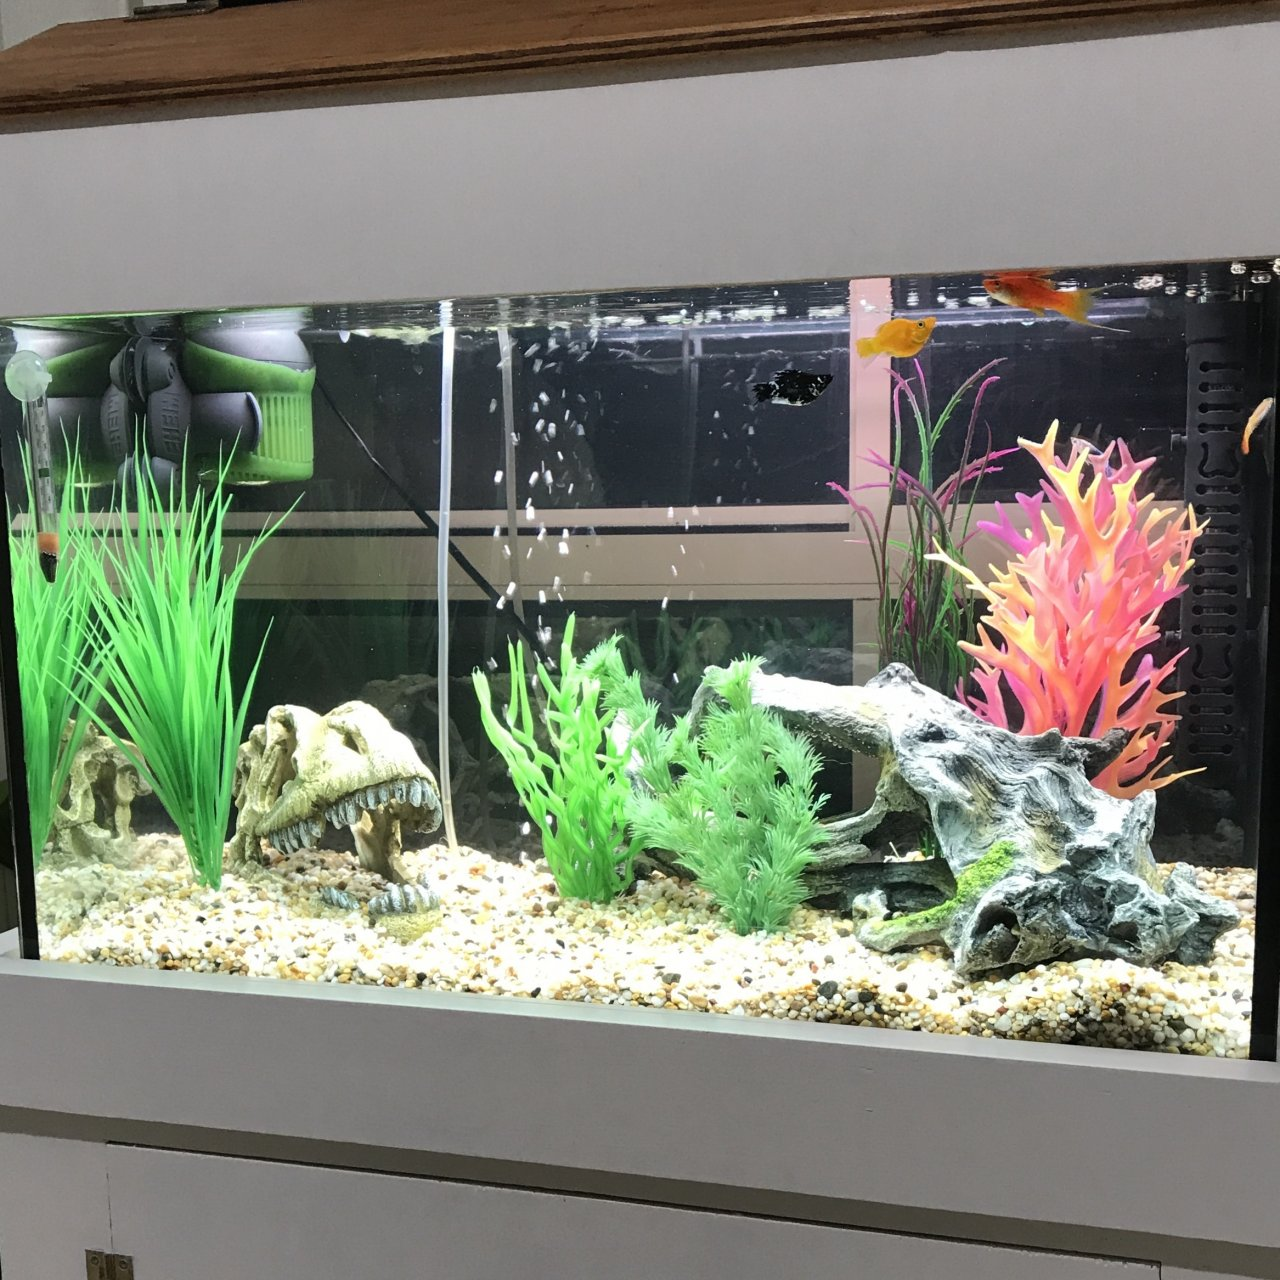 Freshwater fish tank ammonia levels - I Ve Attached Photos Of Both Tanks For Reference